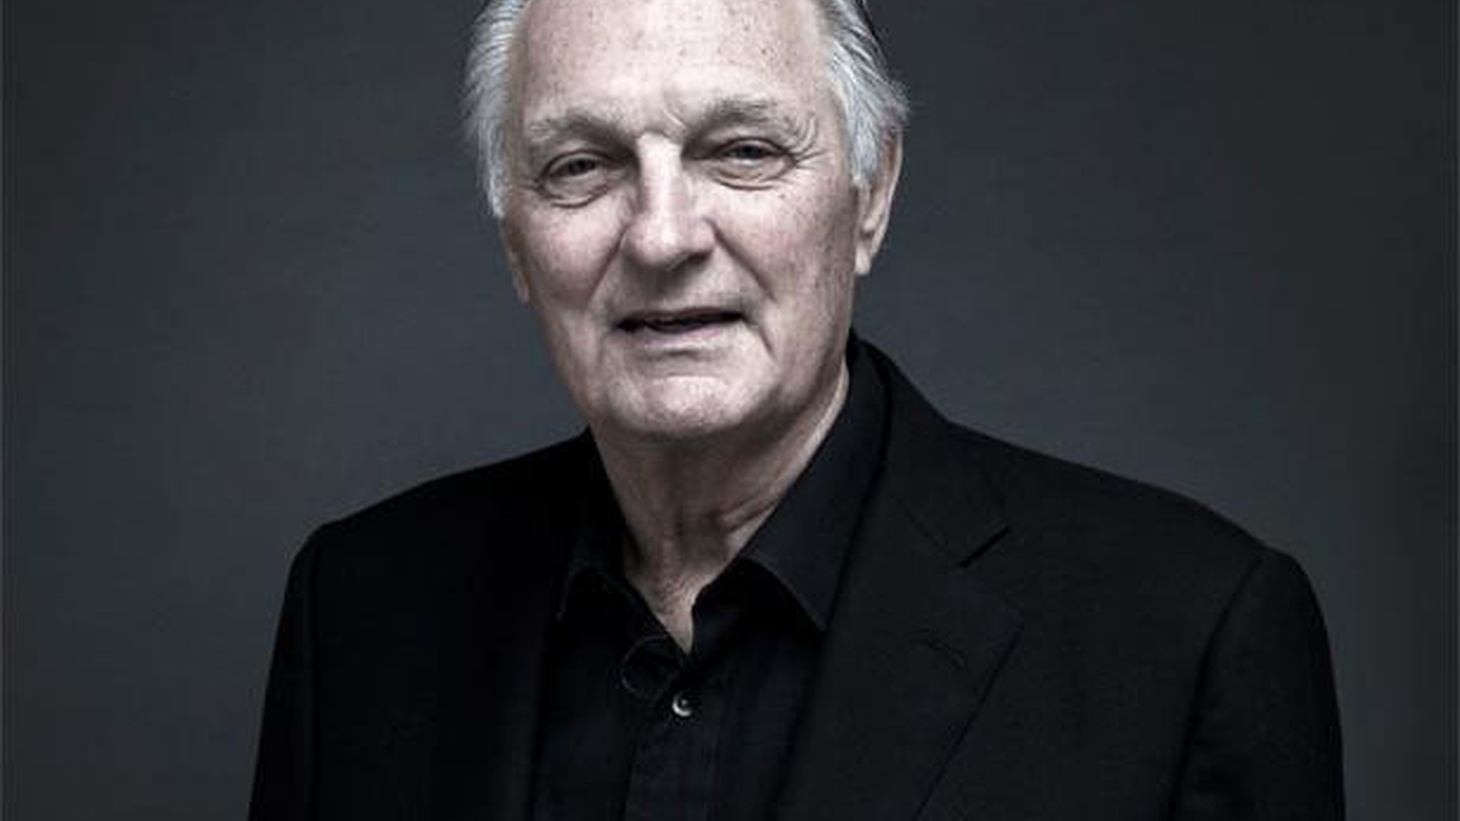 Elvis Mitchell talks to actor, director, and playwright Alan Alda about his new play, Radiance: The Passion of Marie Curie, now at the Geffen Playhouse in Los Angeles.